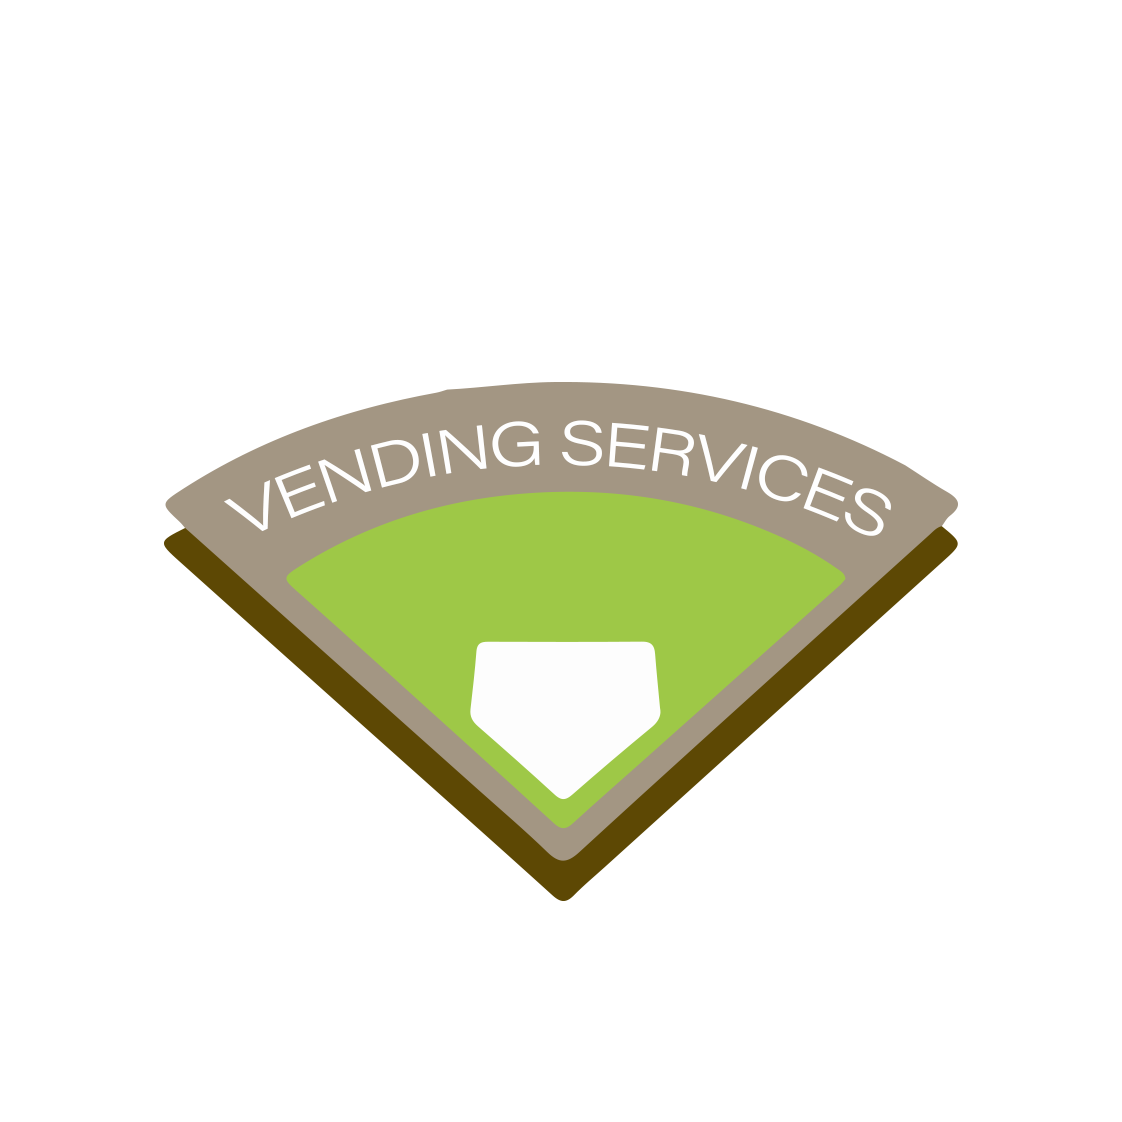 Home Run Vending Services - Amherst, NY 14228 - (716)276-8165 | ShowMeLocal.com